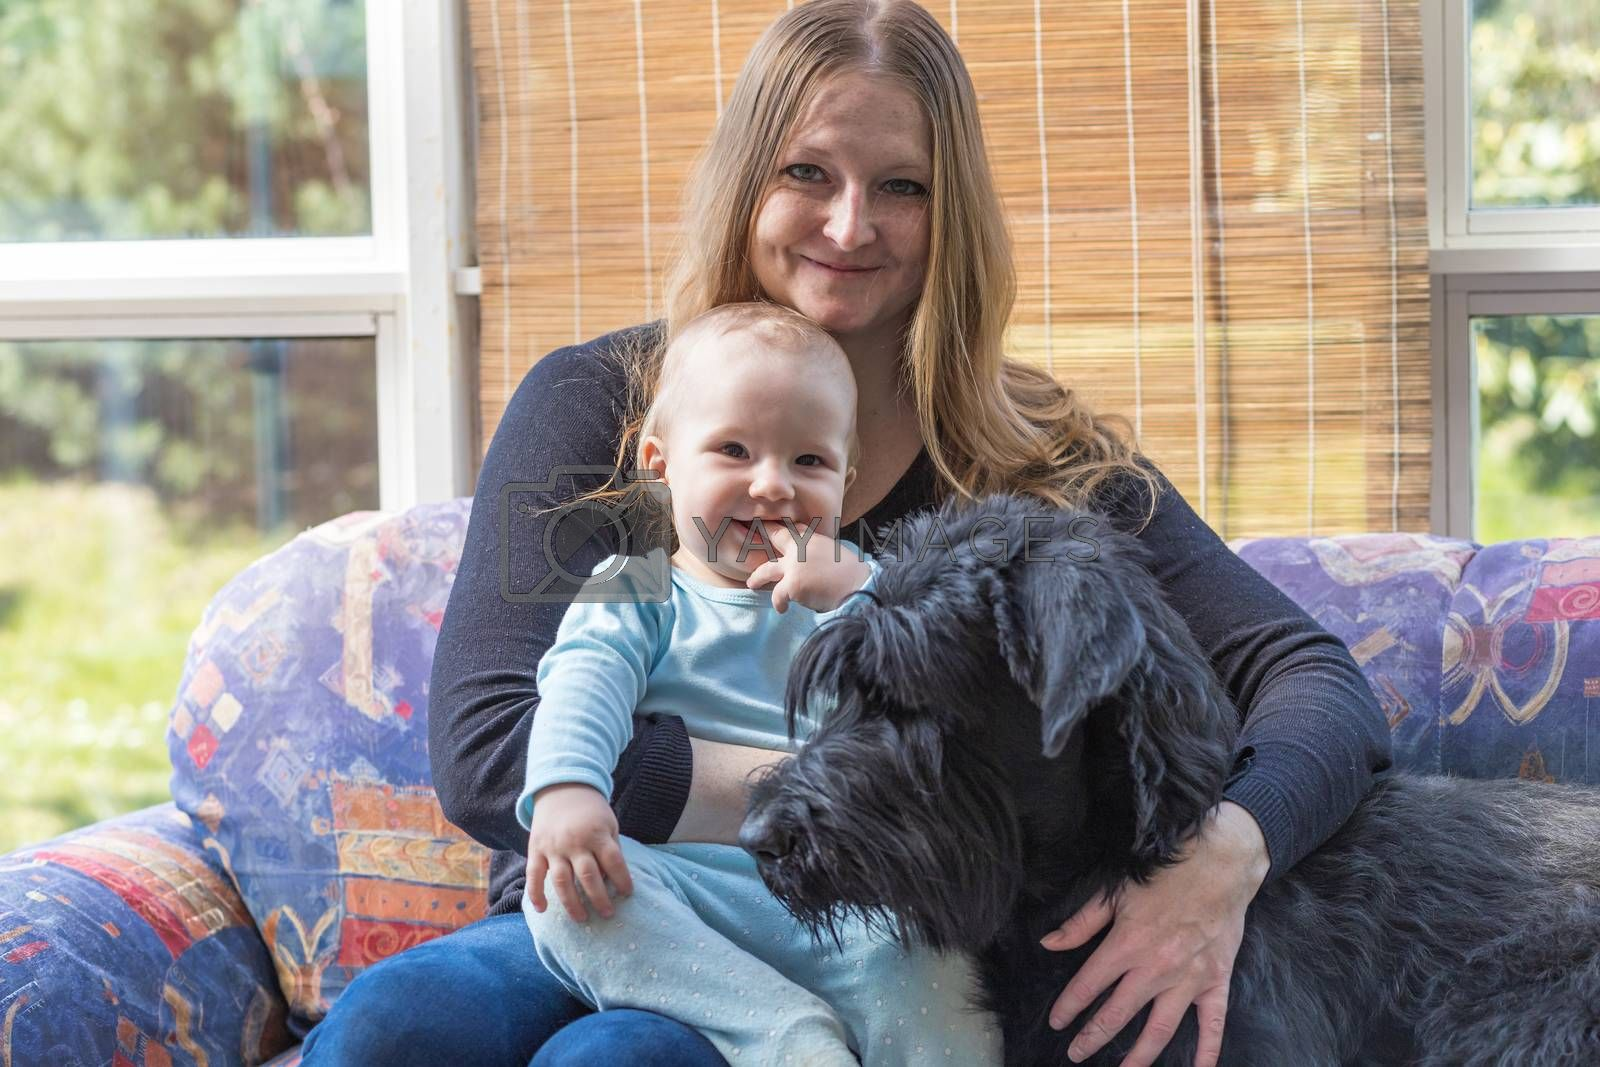 Young mother with her smiling baby boy and Big Black Schnauzer Dog together.